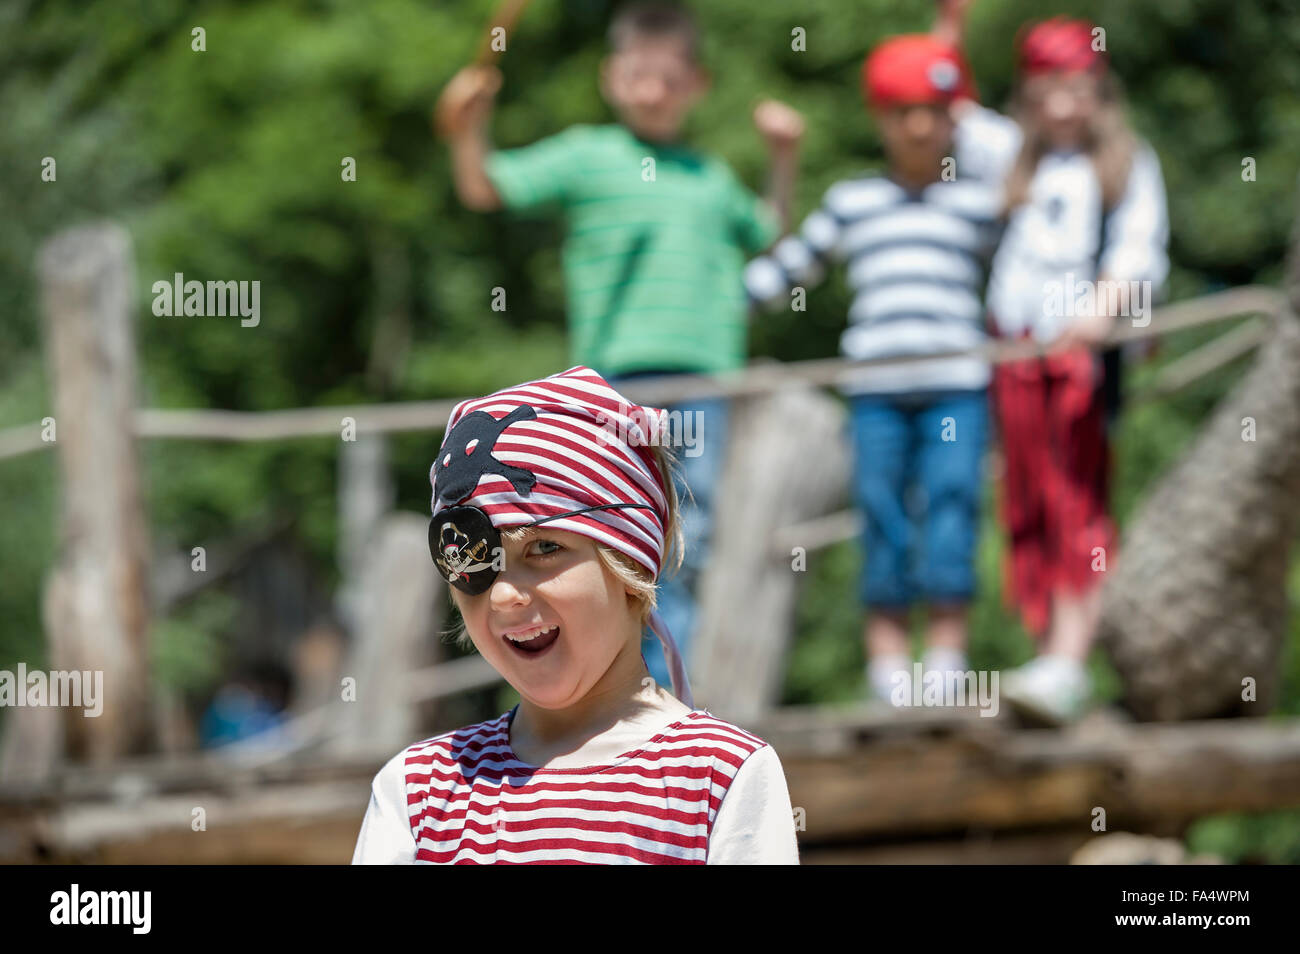 Boy dressed up as a pirate playing in adventure playground with his friends in the background, Bavaria, Germany Stock Photo